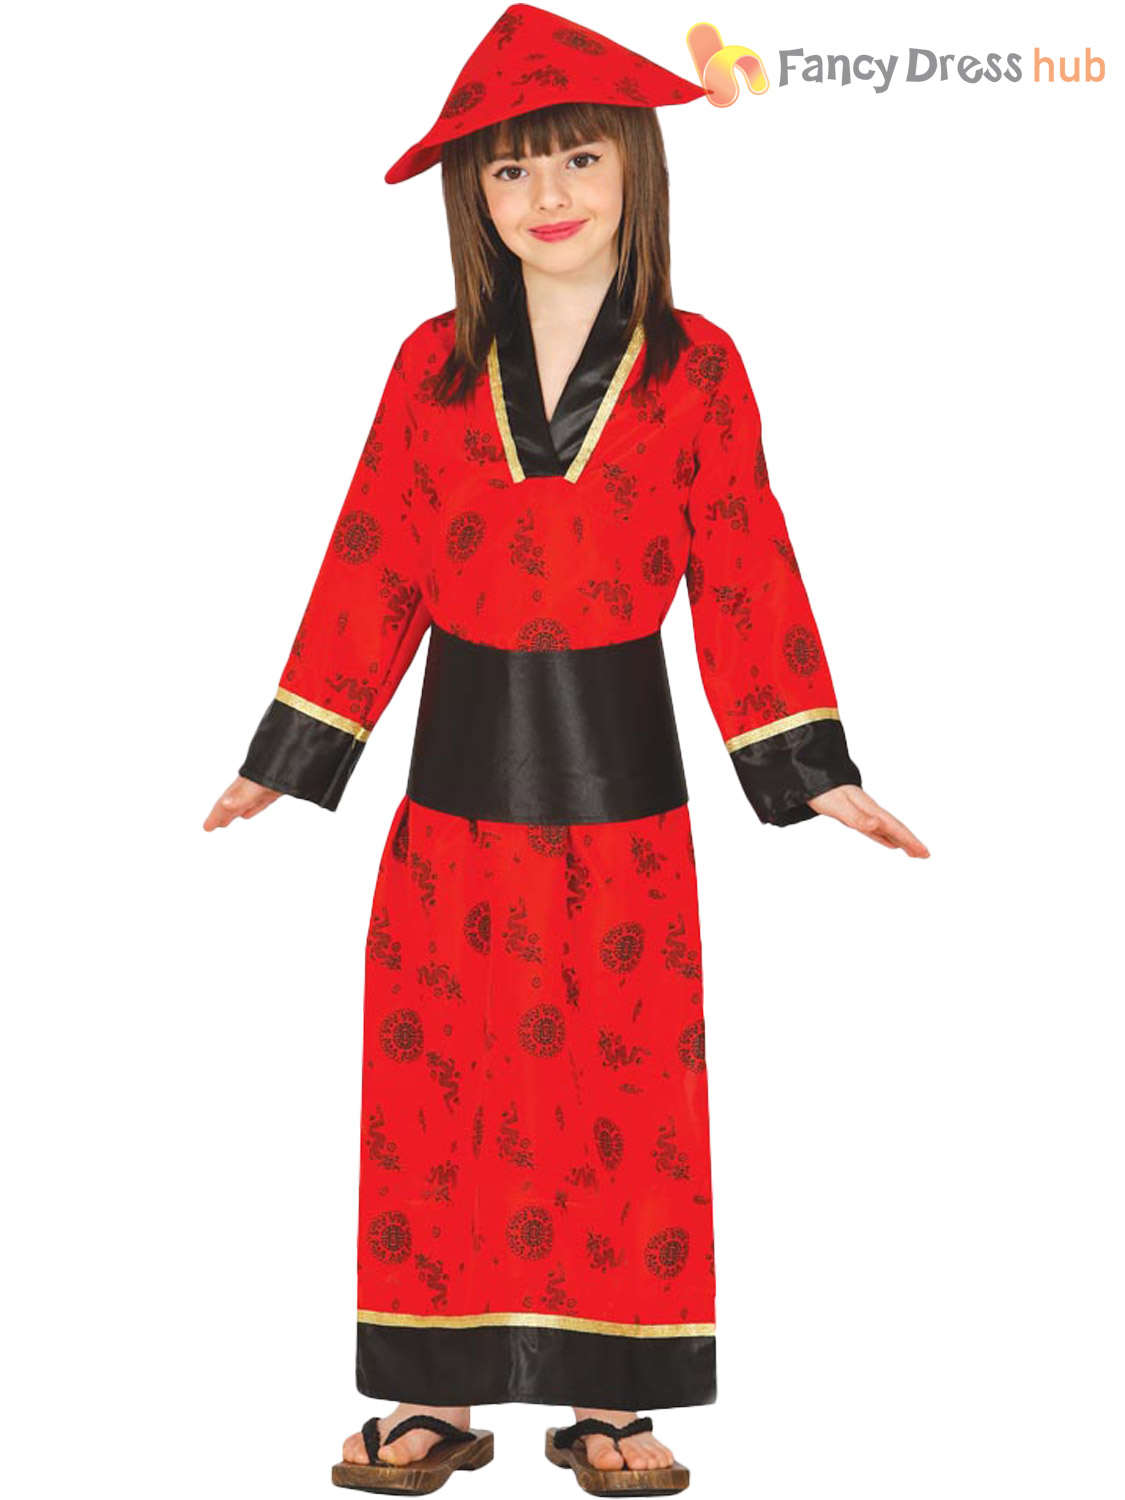 dc5e5ac48 Girls Chinese Oriental Fancy Dress Costume Childrens Outfit Kimono ...